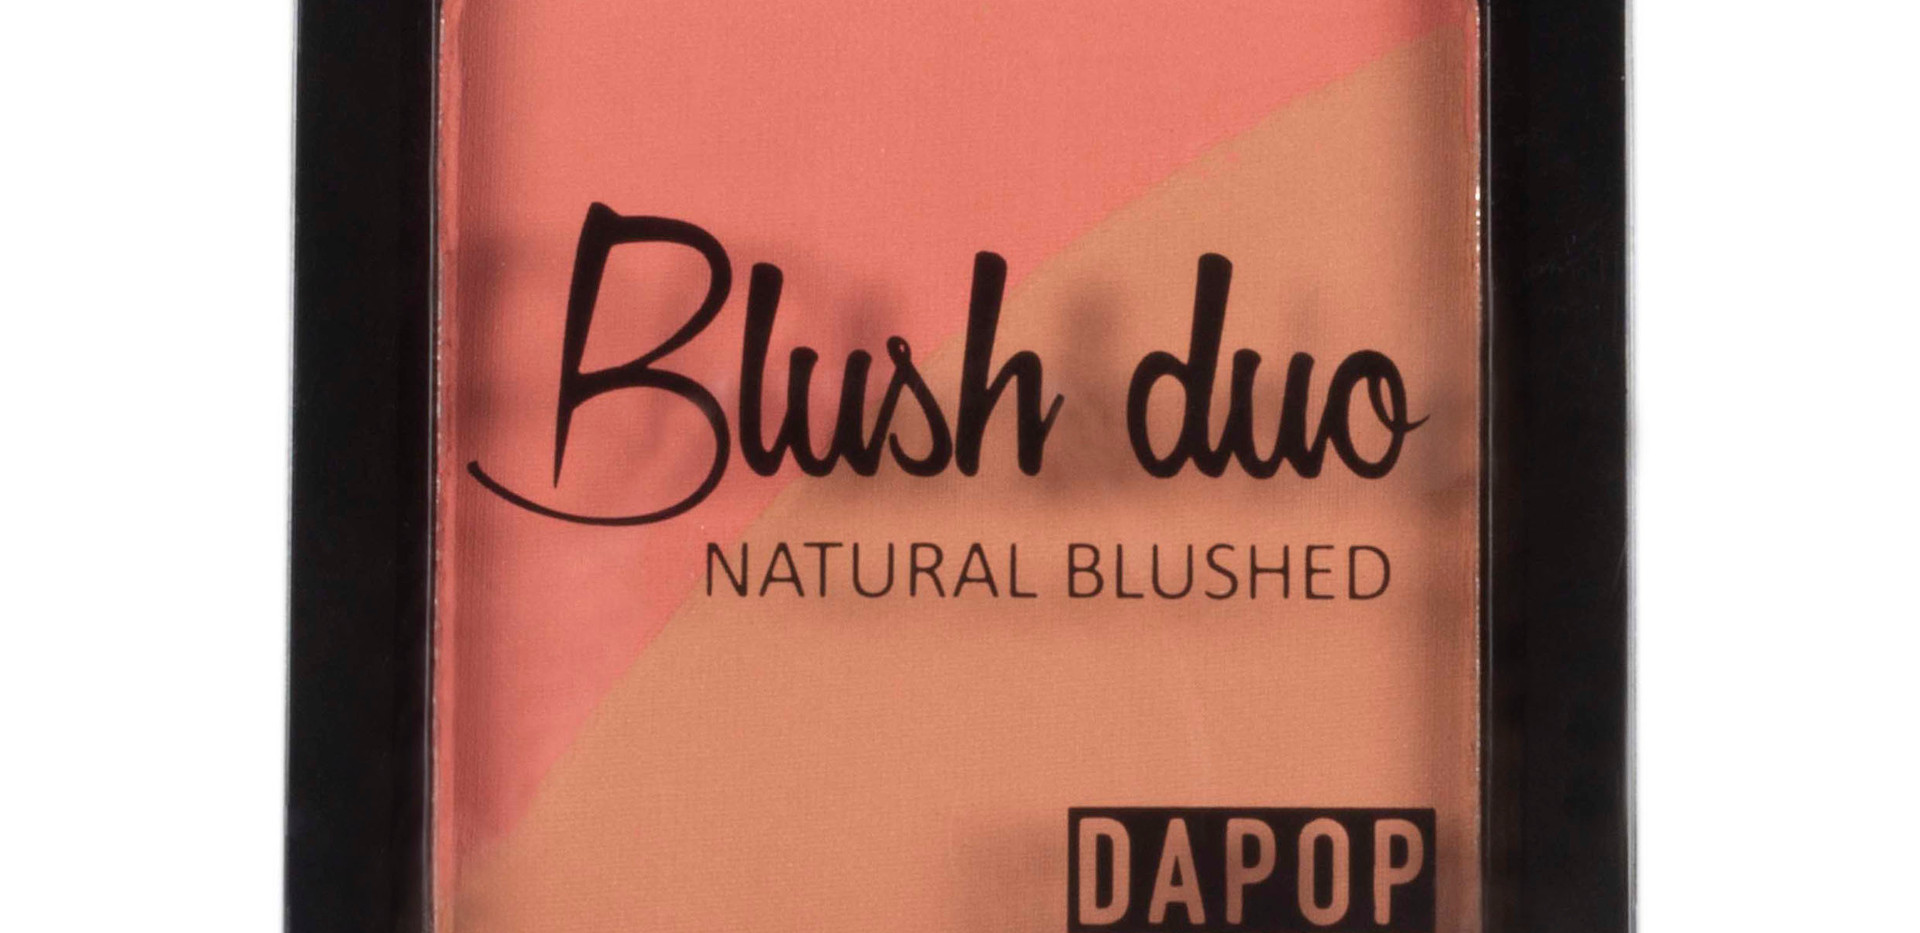 Blush Duo Natural Blushed Dapop - HB96814